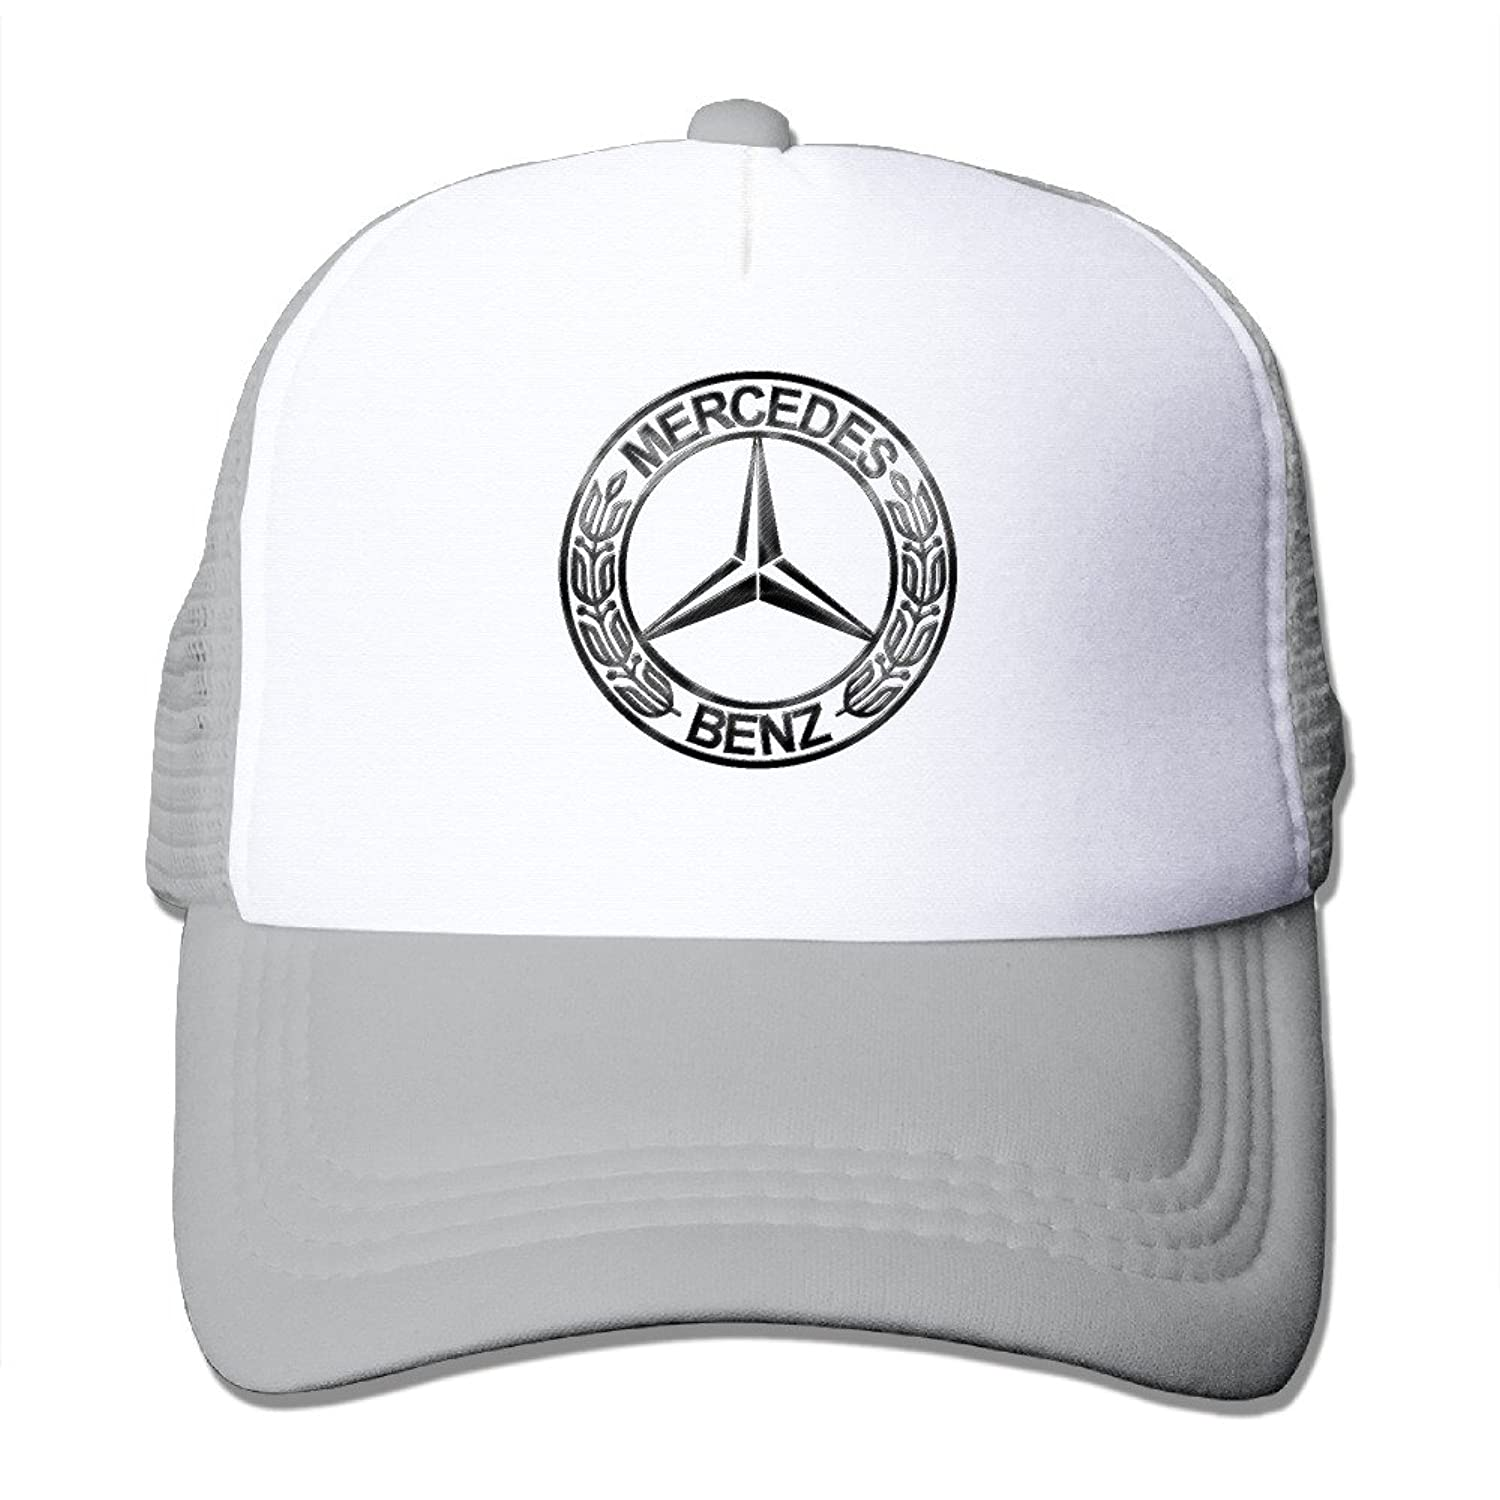 WuliNN Mercedes-benz Logo Mesh Trucker Hat Outdoor Adjustable Baseball Cap For Unisex